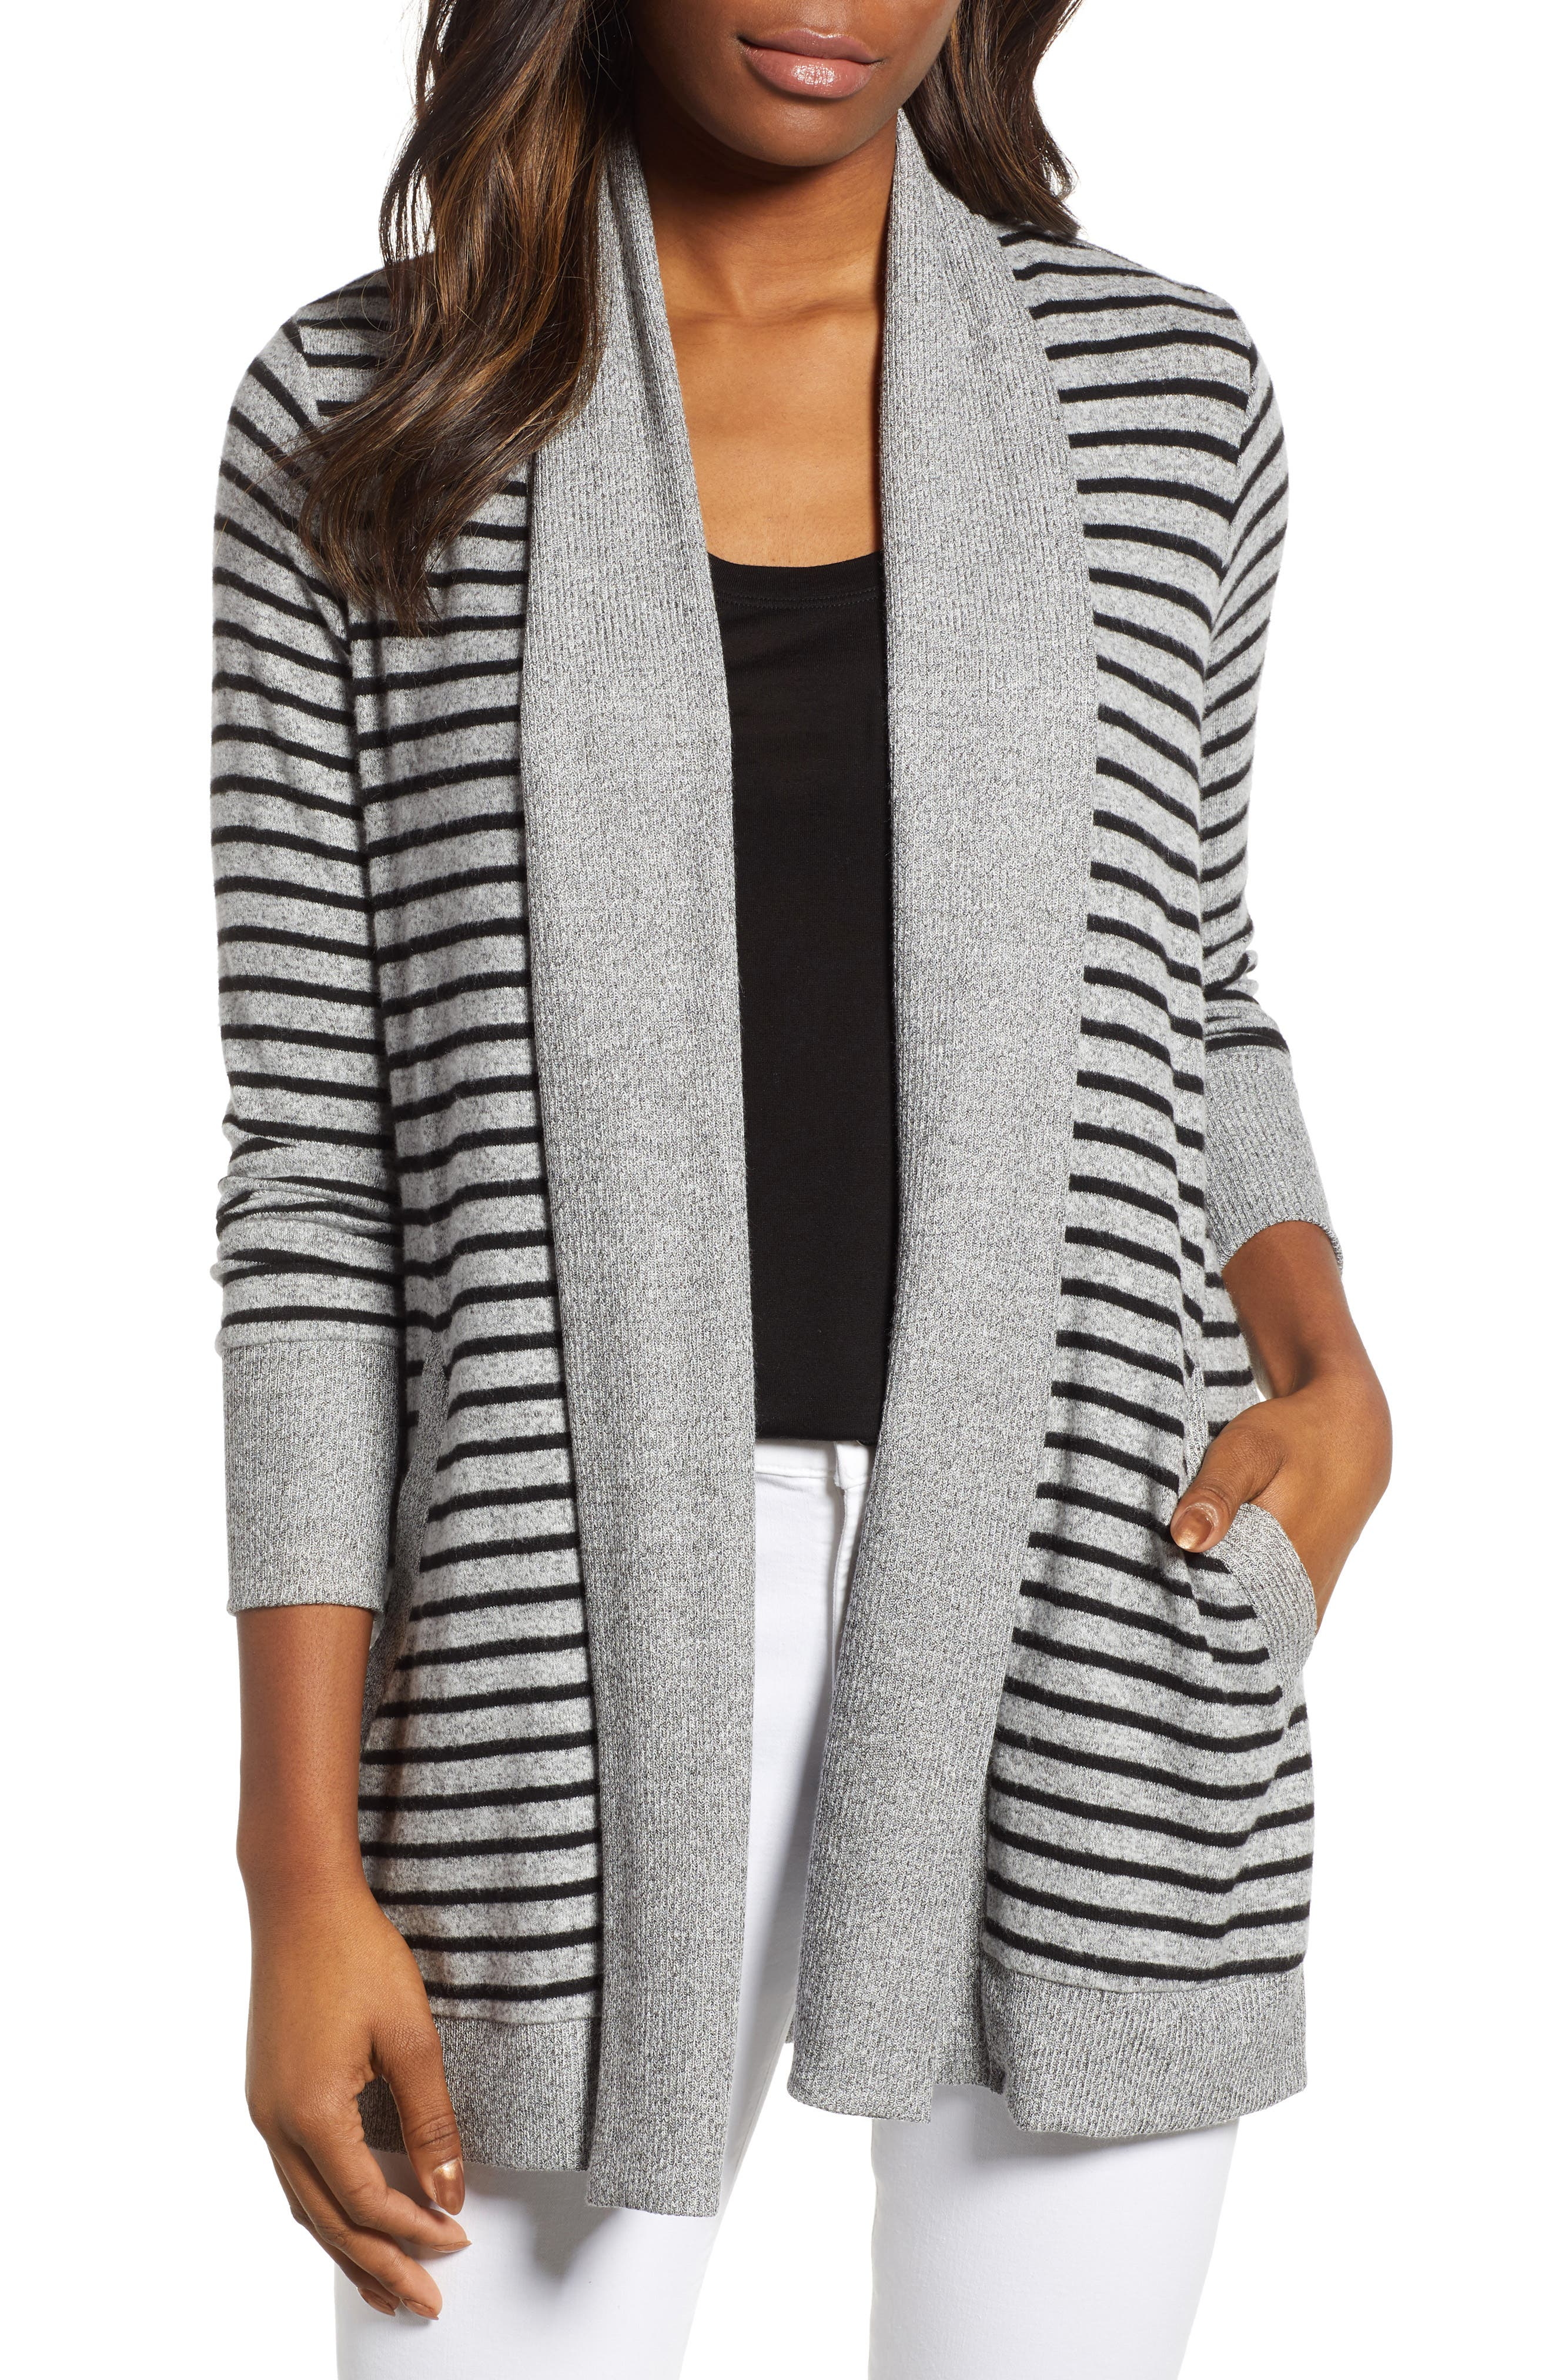 GIBSON, Cozy Ribbed Cardigan, Main thumbnail 1, color, GREY/ BLACK STRIPE